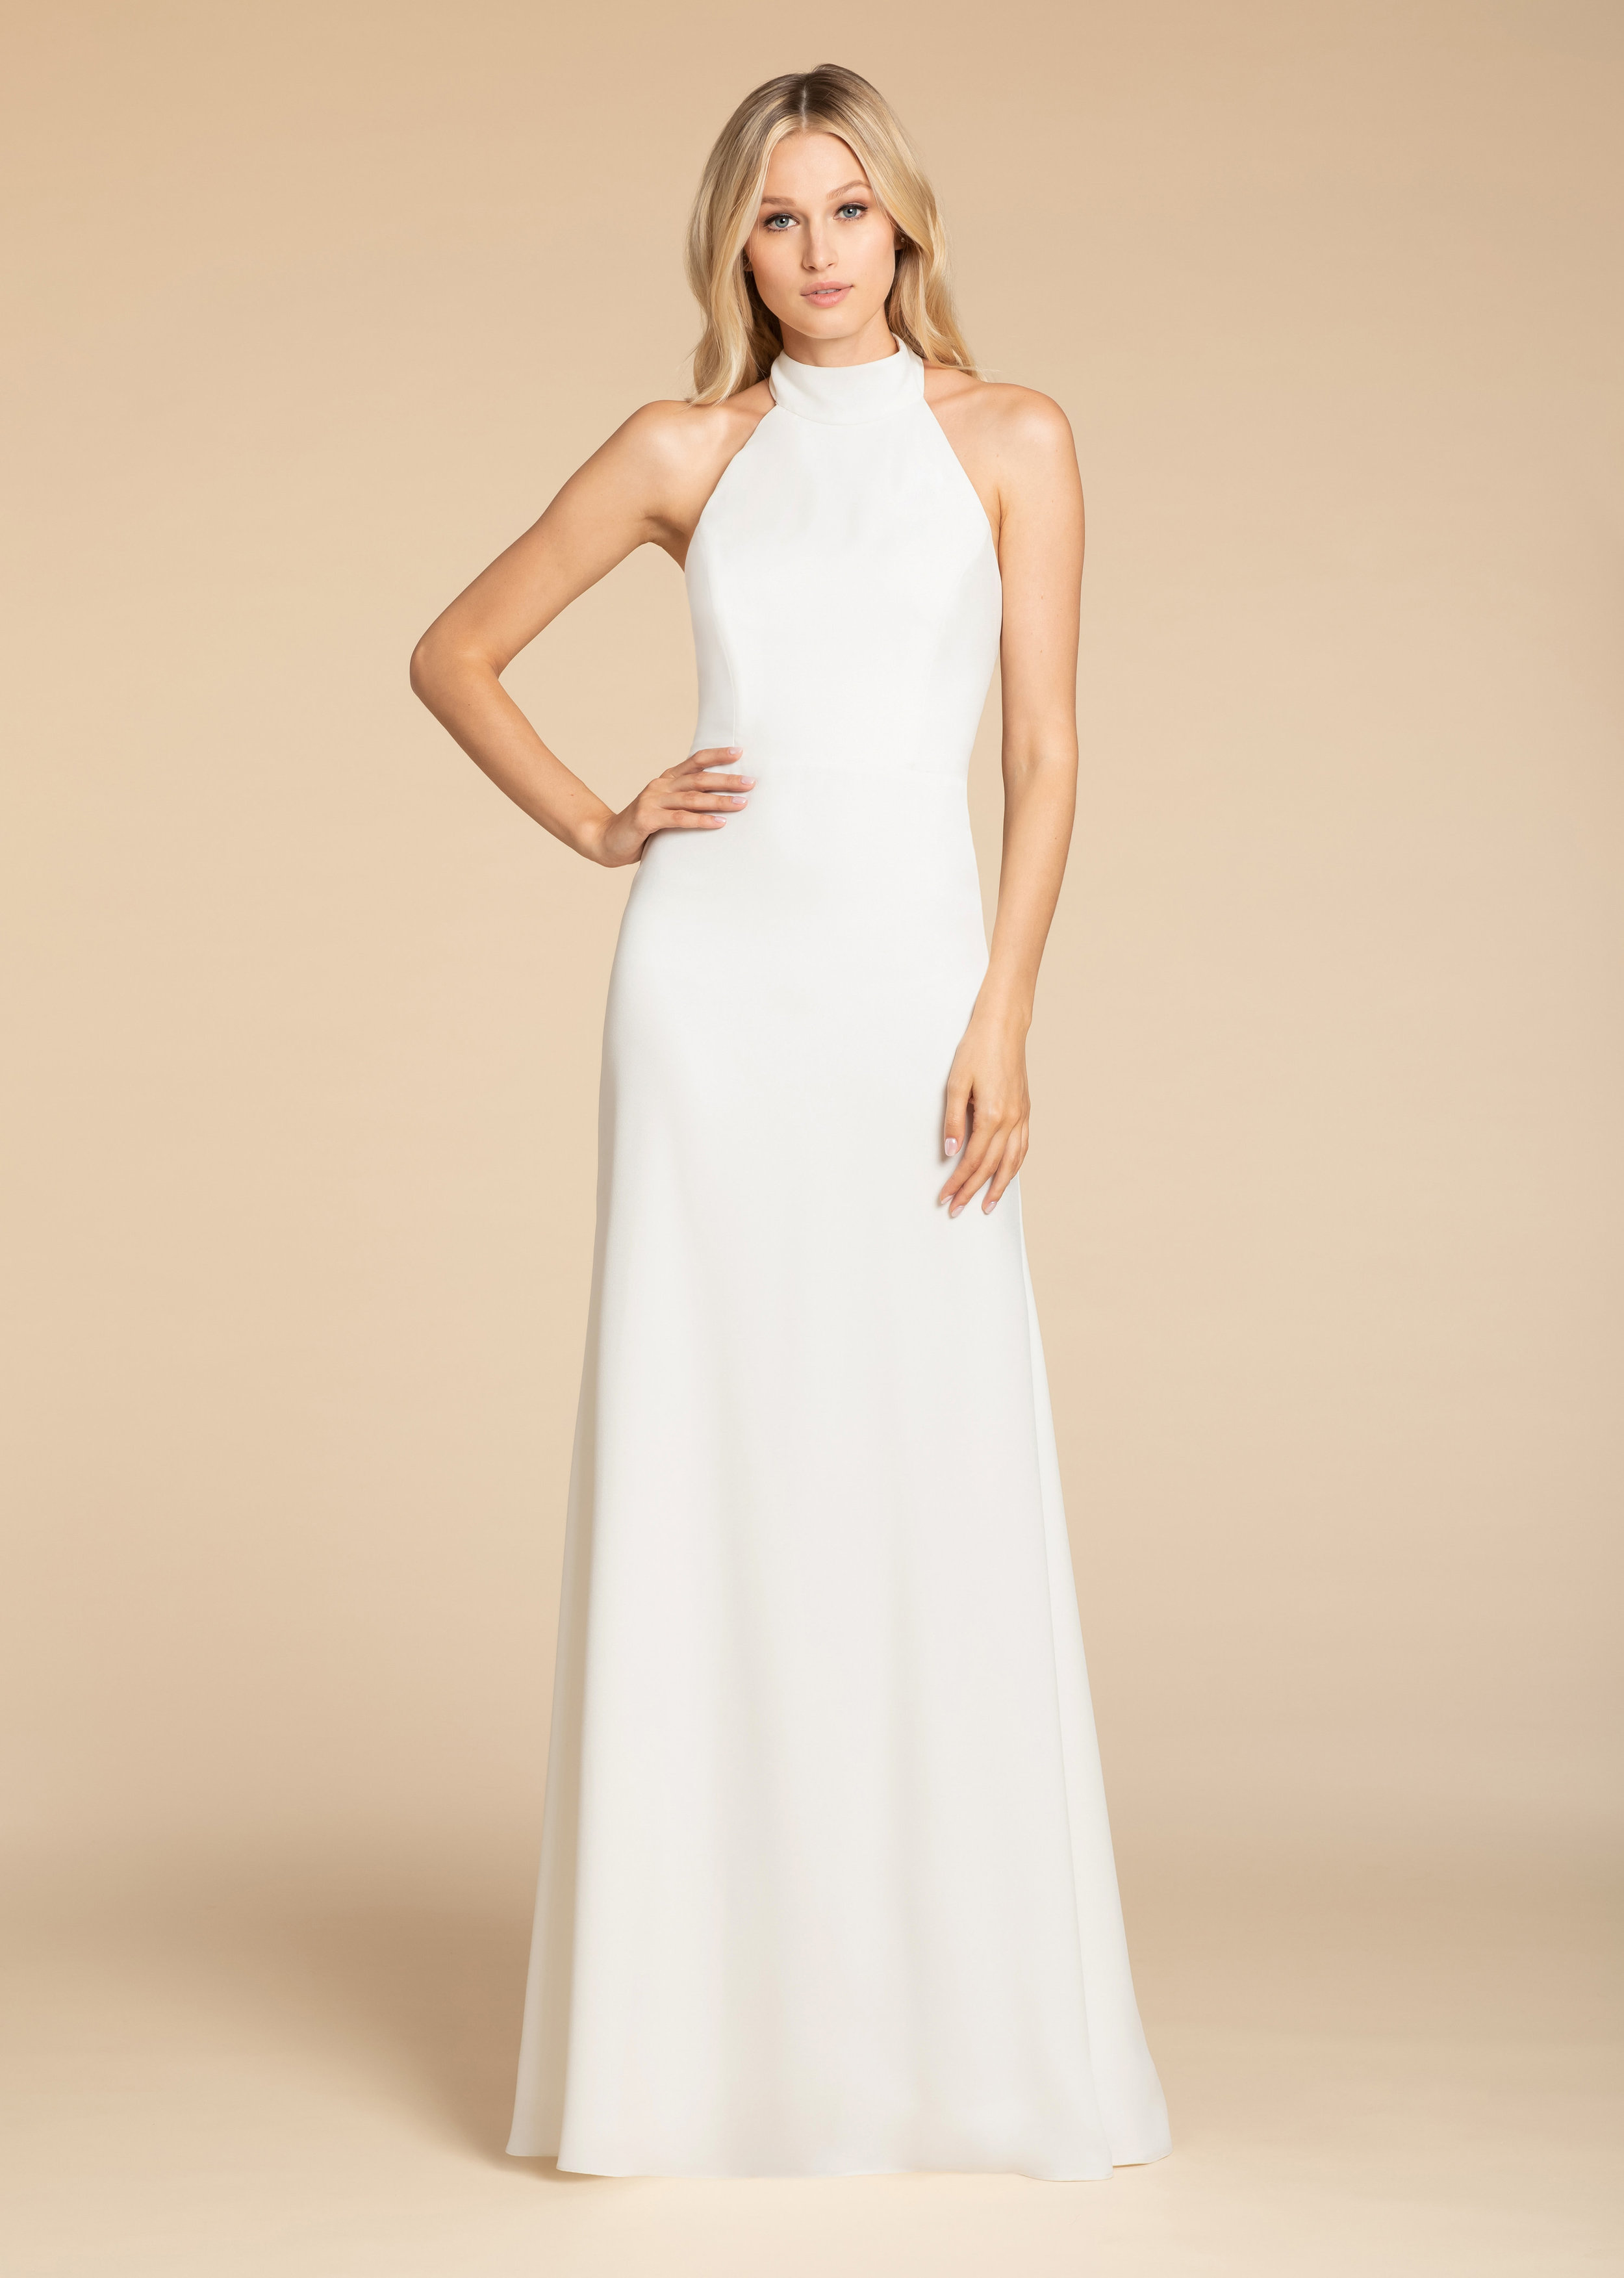 Hayley Paige Bridesmaids style 5900 Ivory crepe A-line gown, racer mock turtleneck, natural waist, strap detail at back